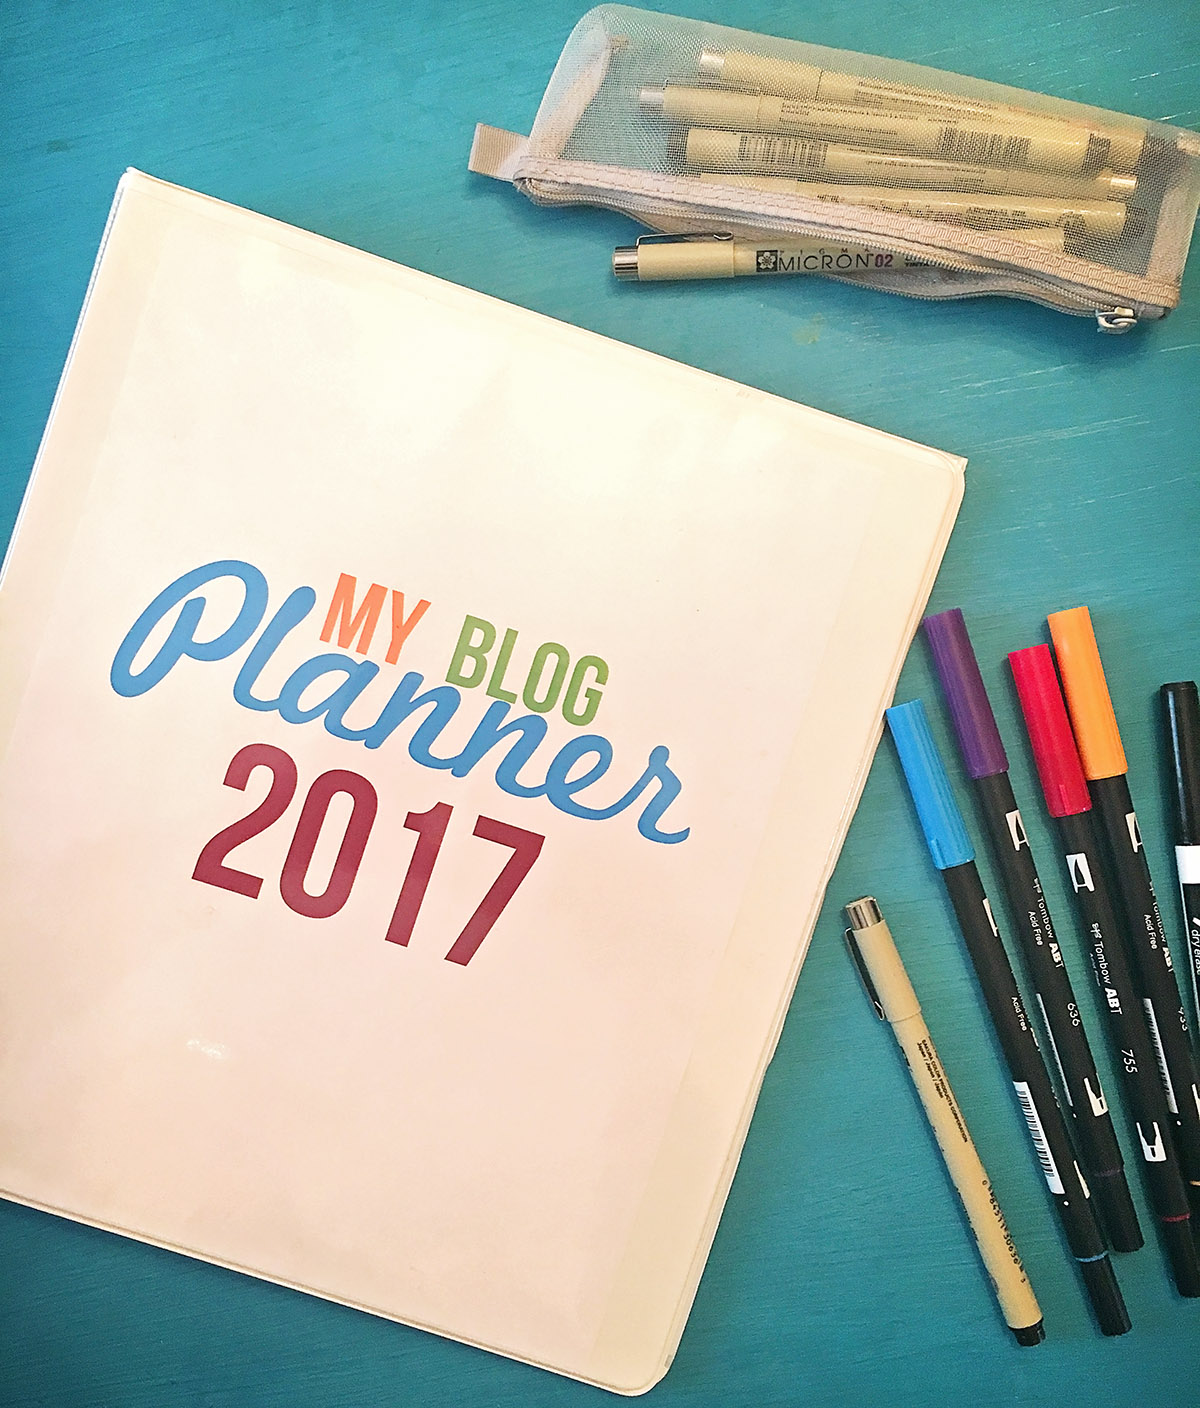 Free Printable Blog Planner 2017 Edition - A Well Crafted Party